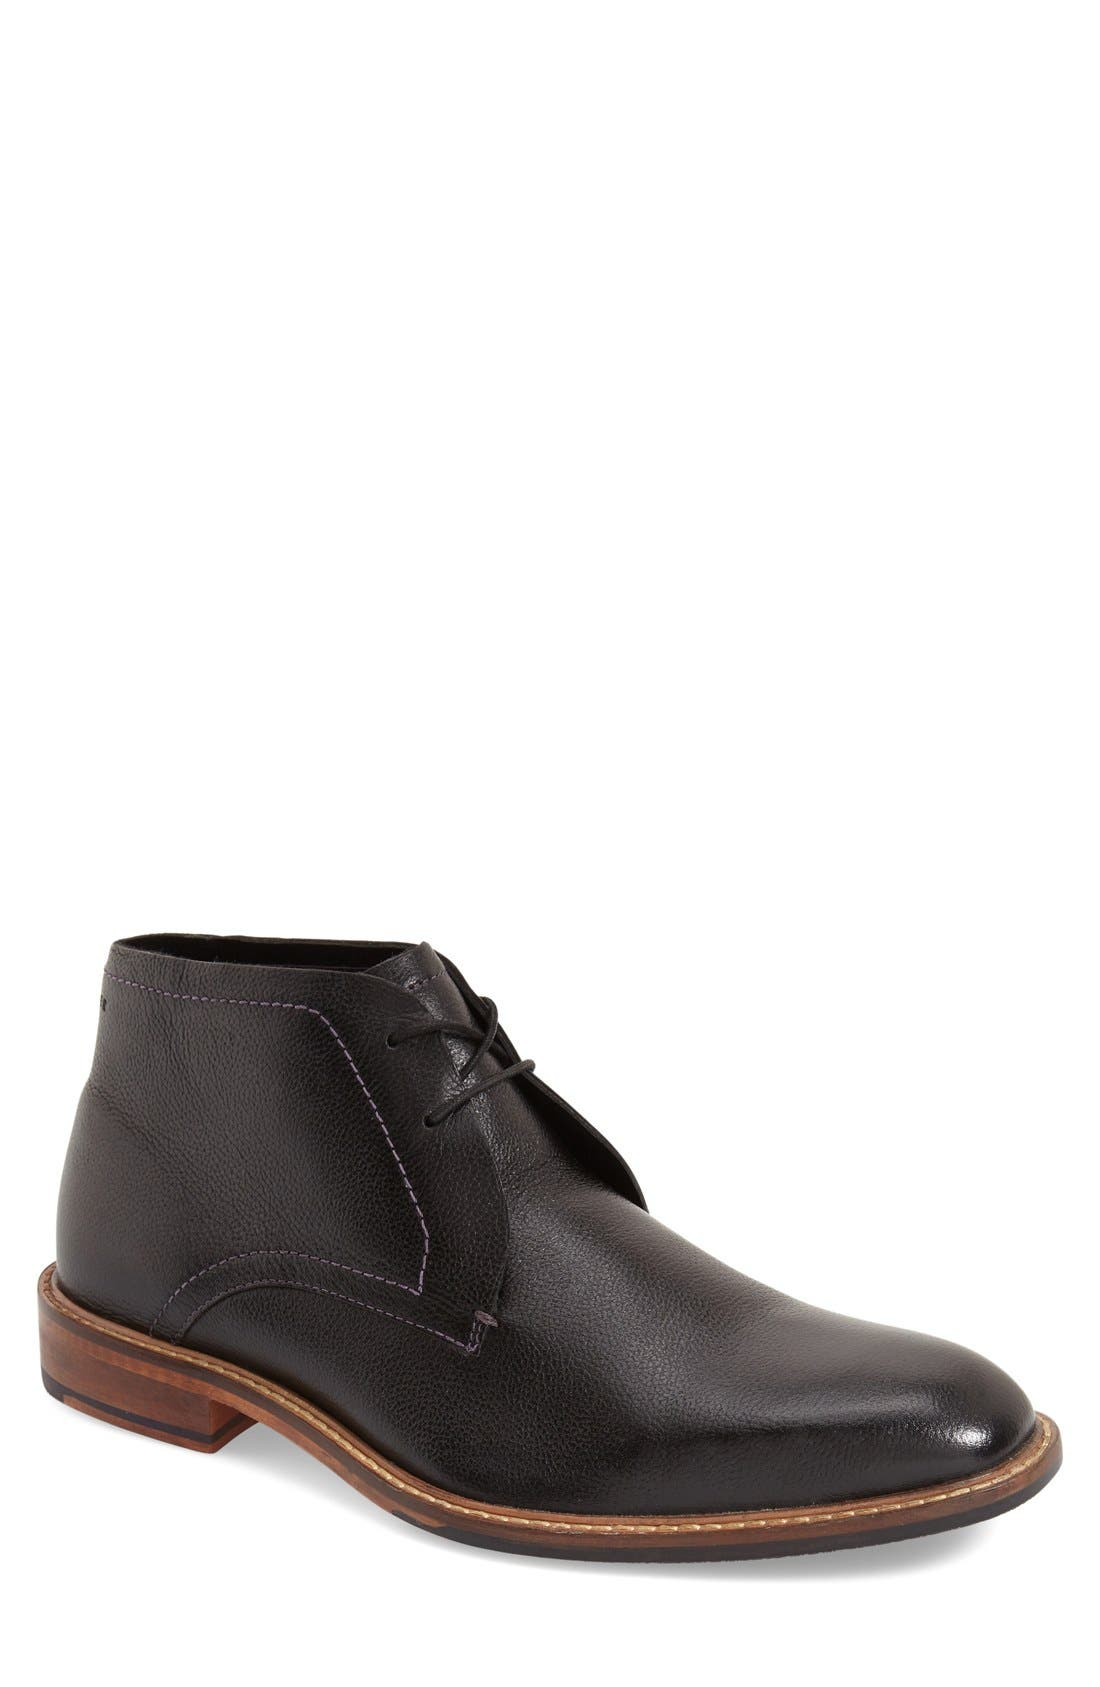 'Torsdi 4' Chukka Boot,                         Main,                         color, Black Leather